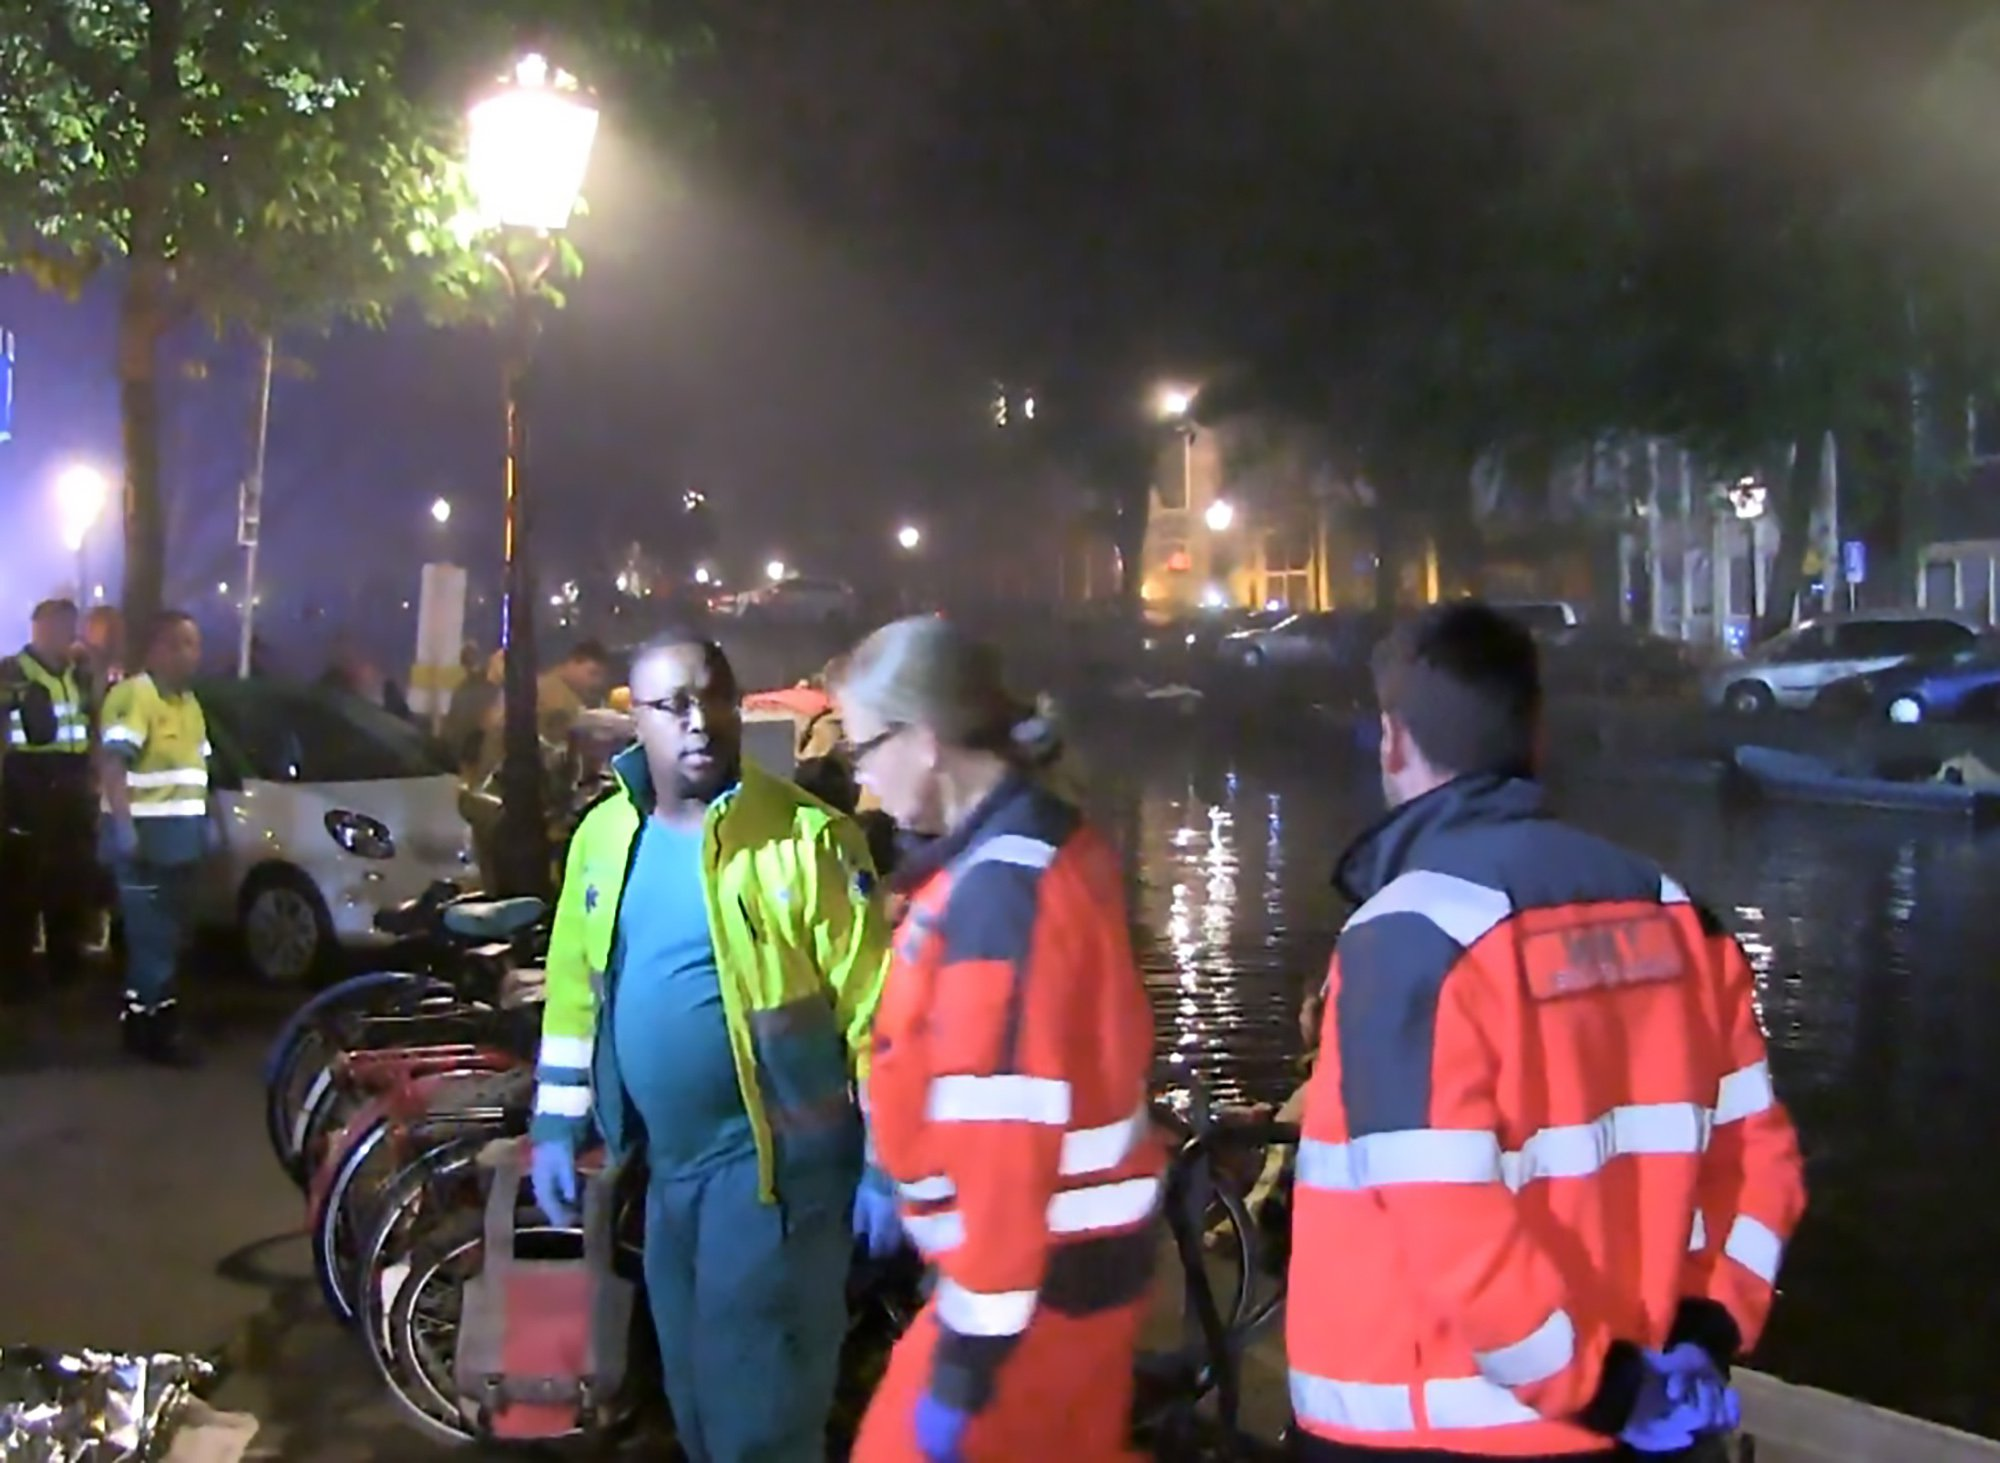 British tourist dies after falling into Amsterdam canal while urinating